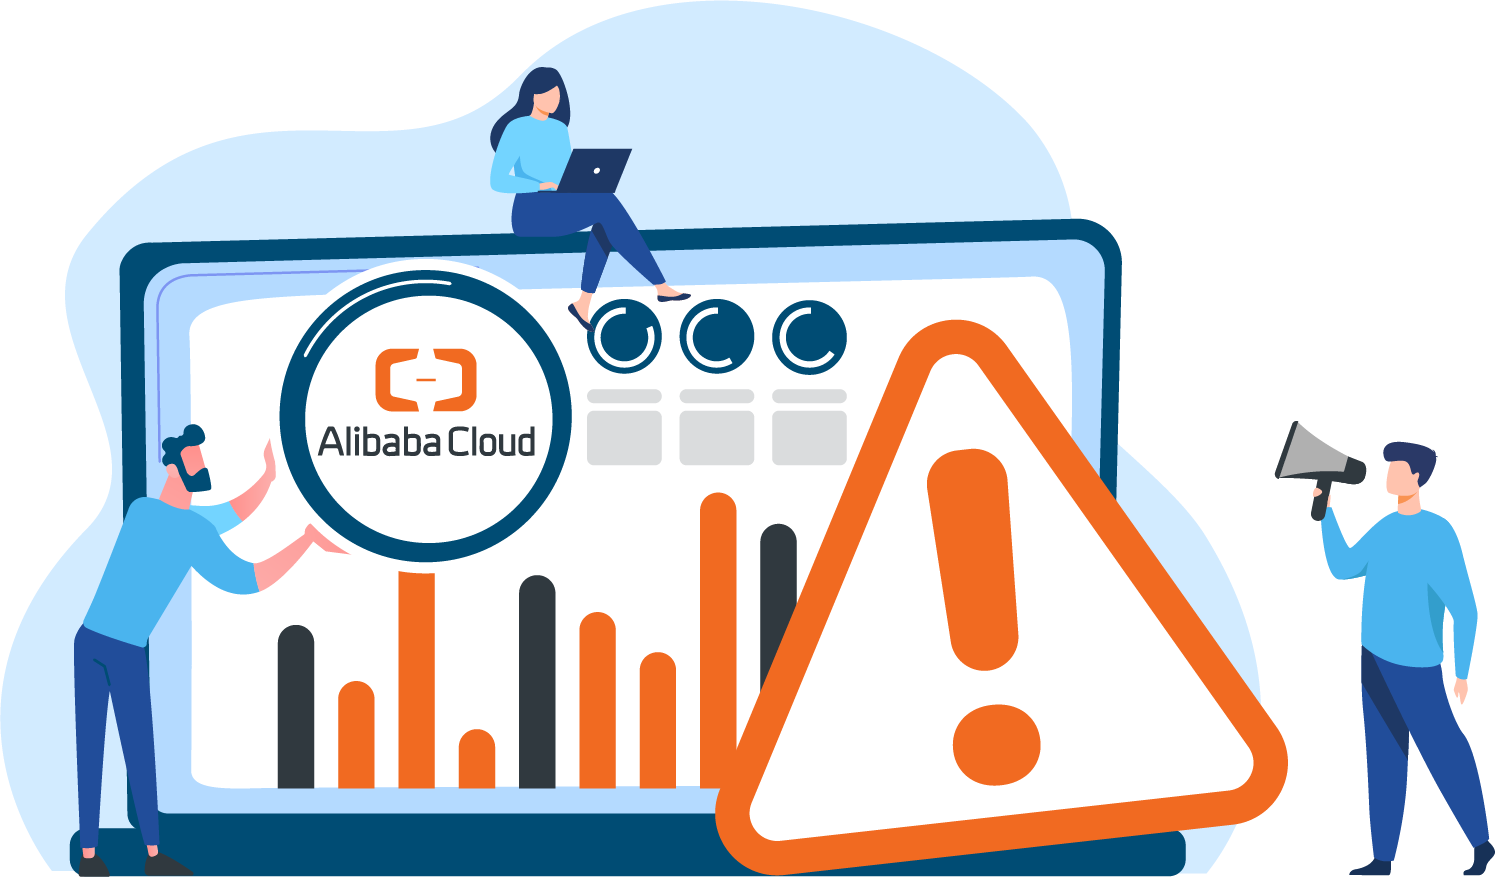 Alibaba cost management